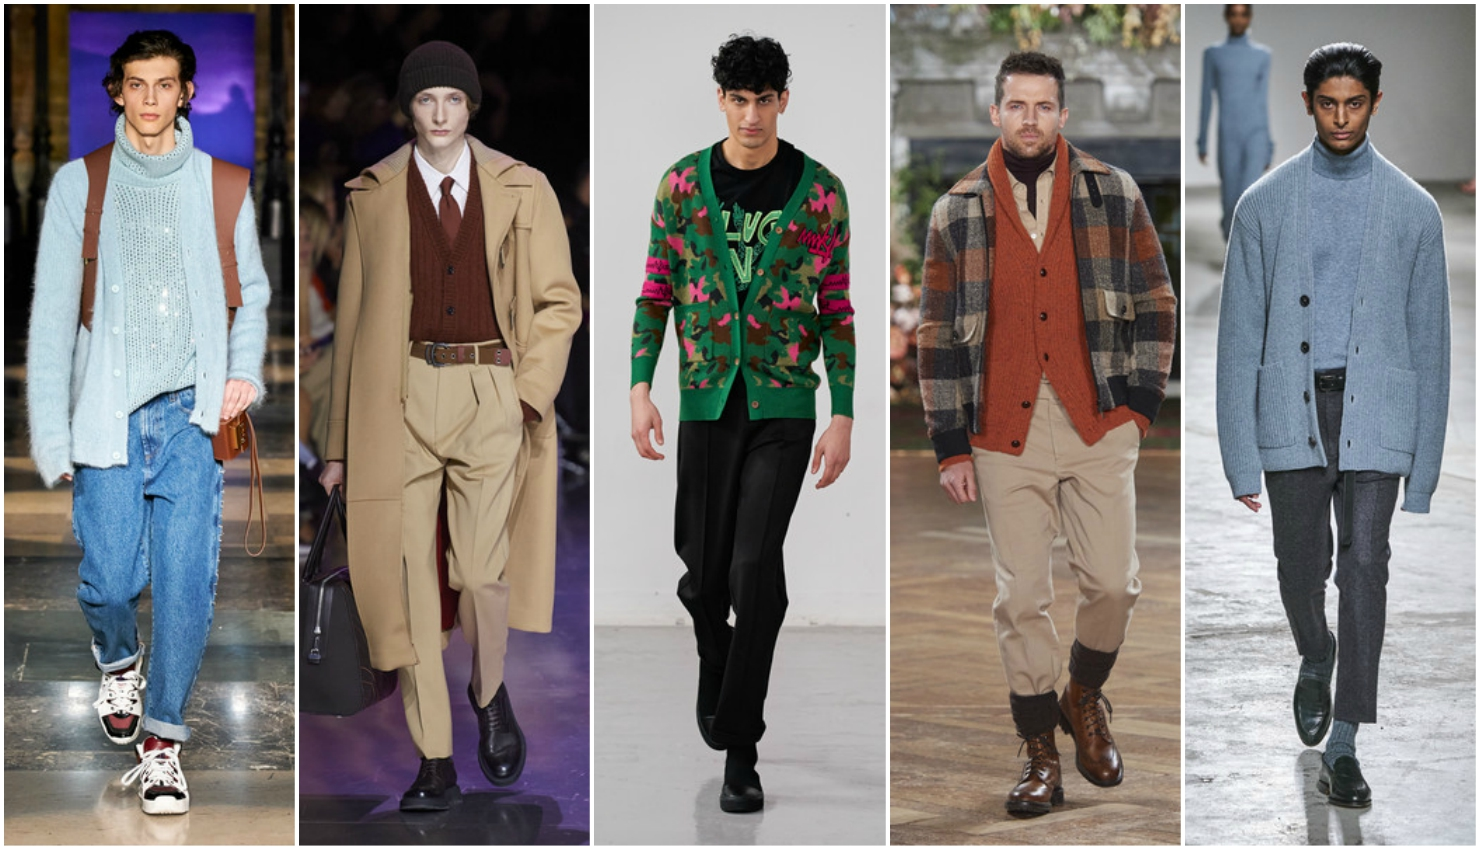 Men's autumn winter trends 2020/21 cardigans